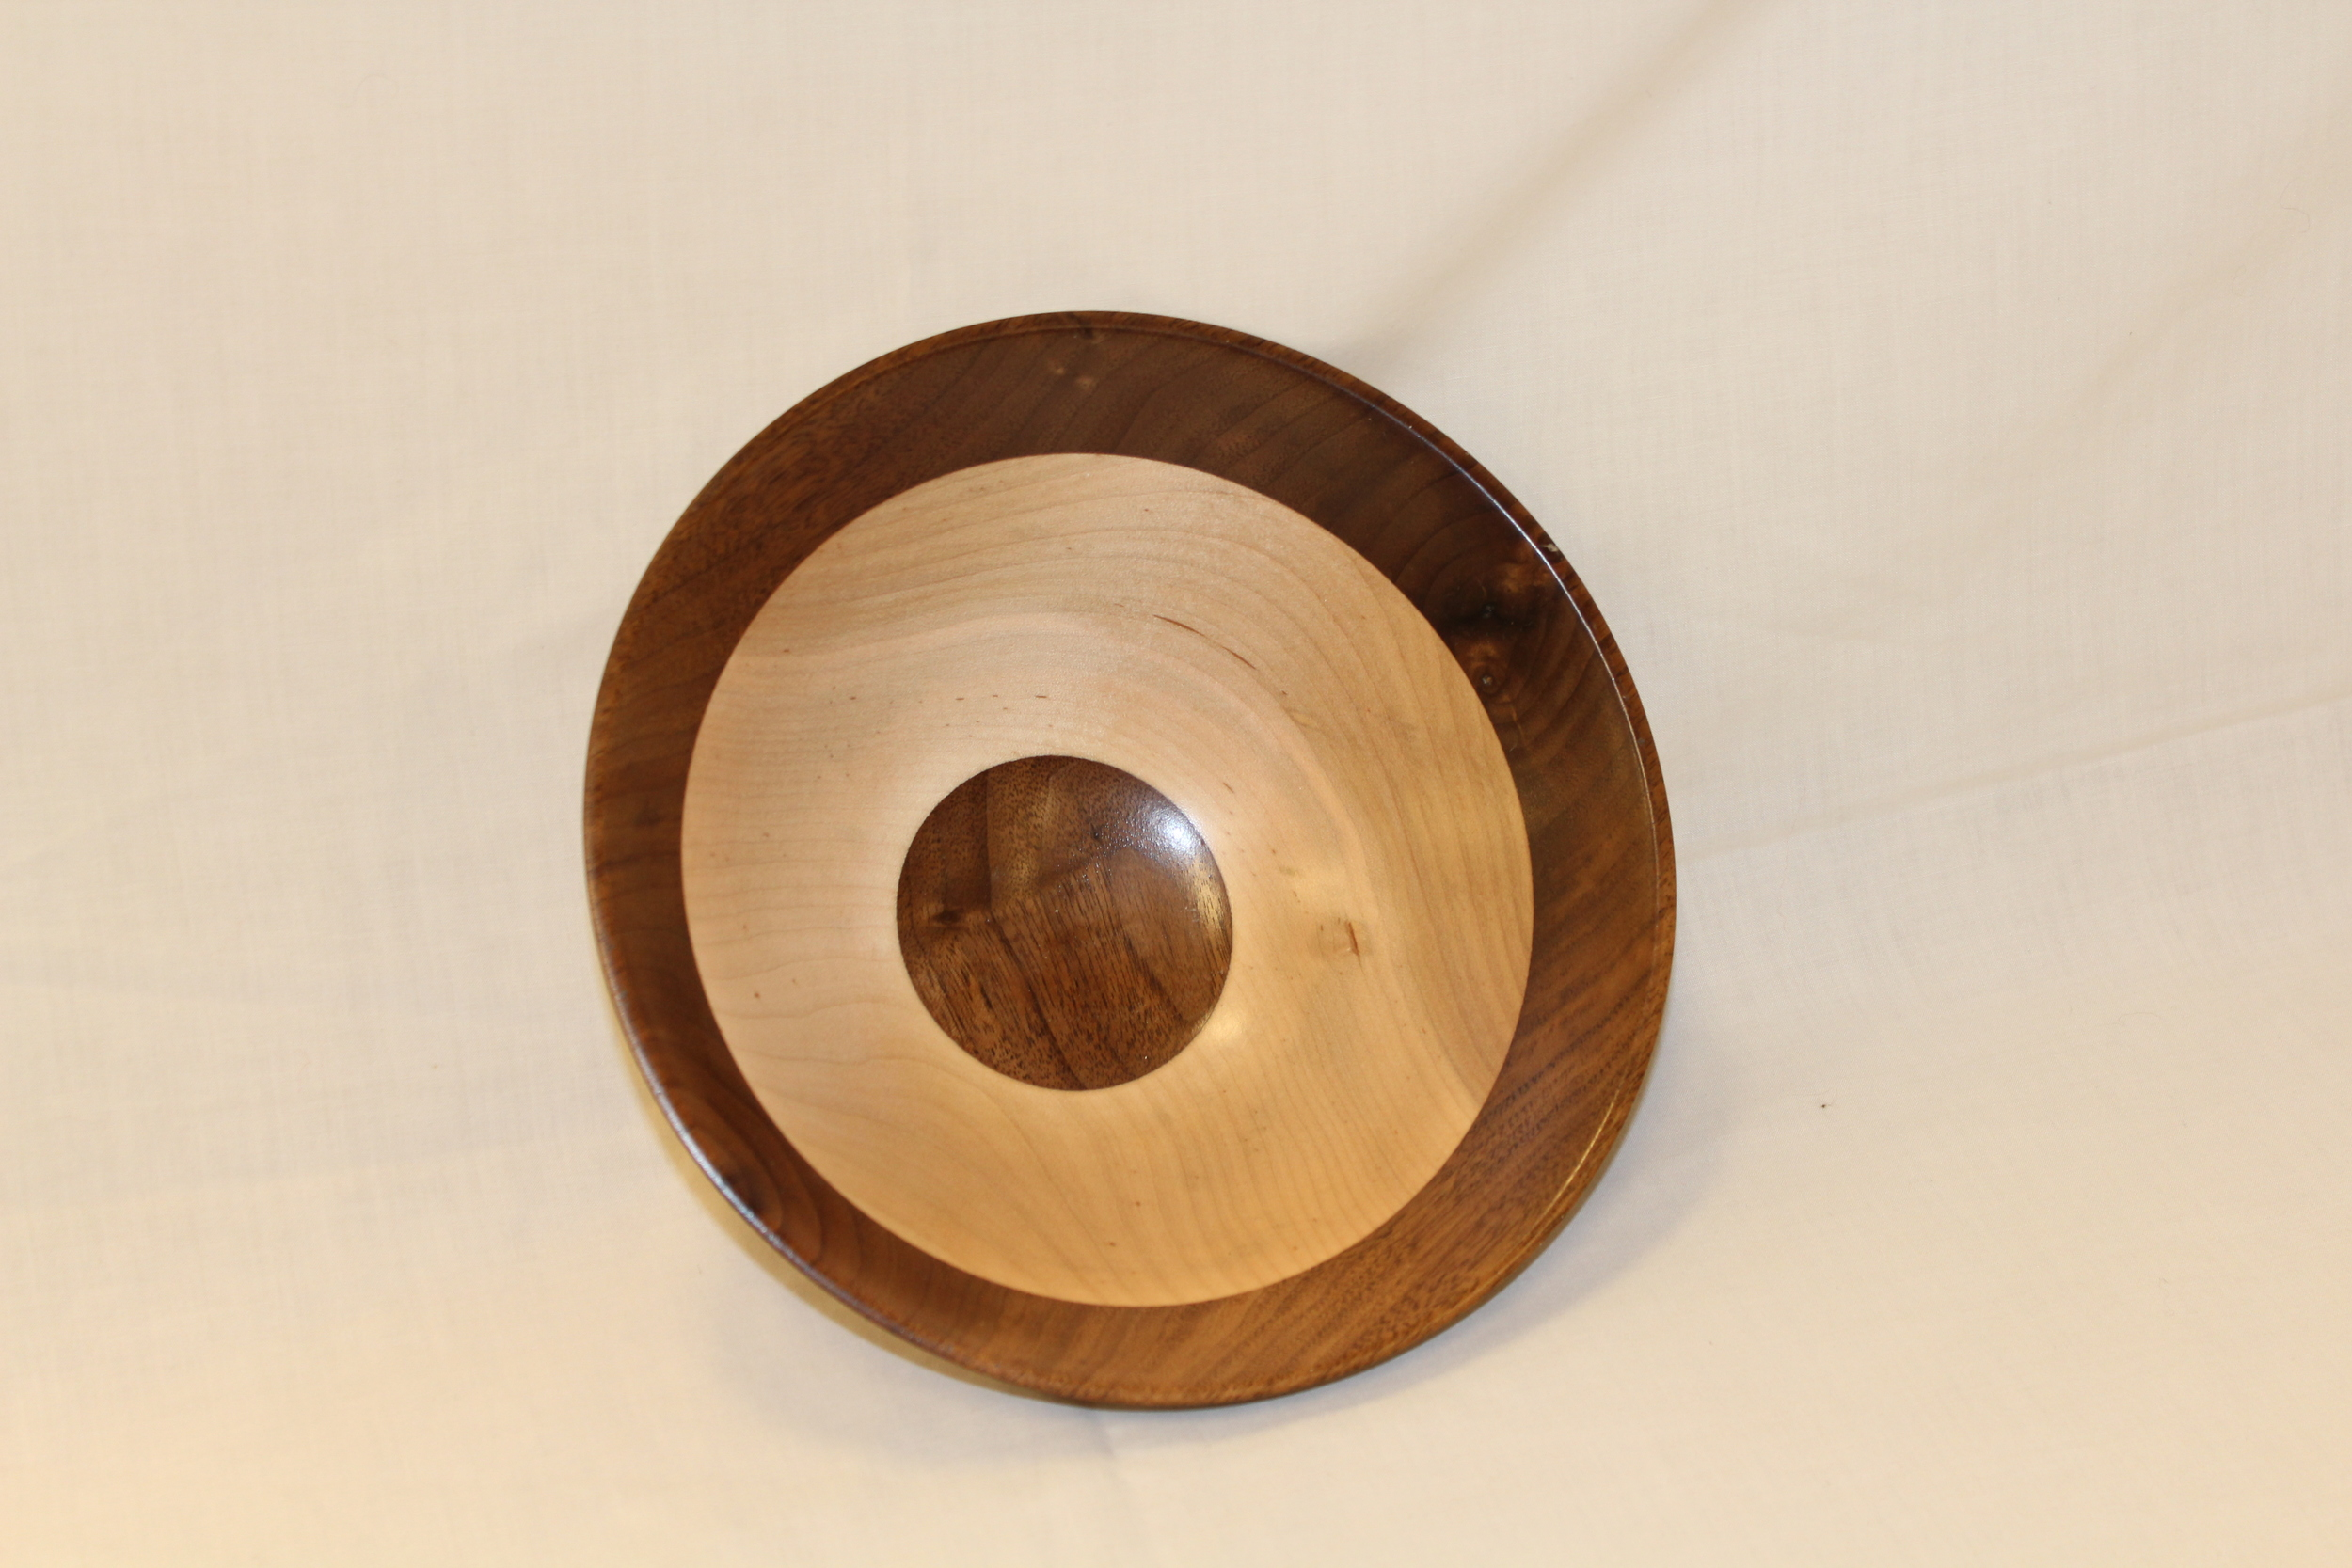 Canadian Maple and Walnut Bowl